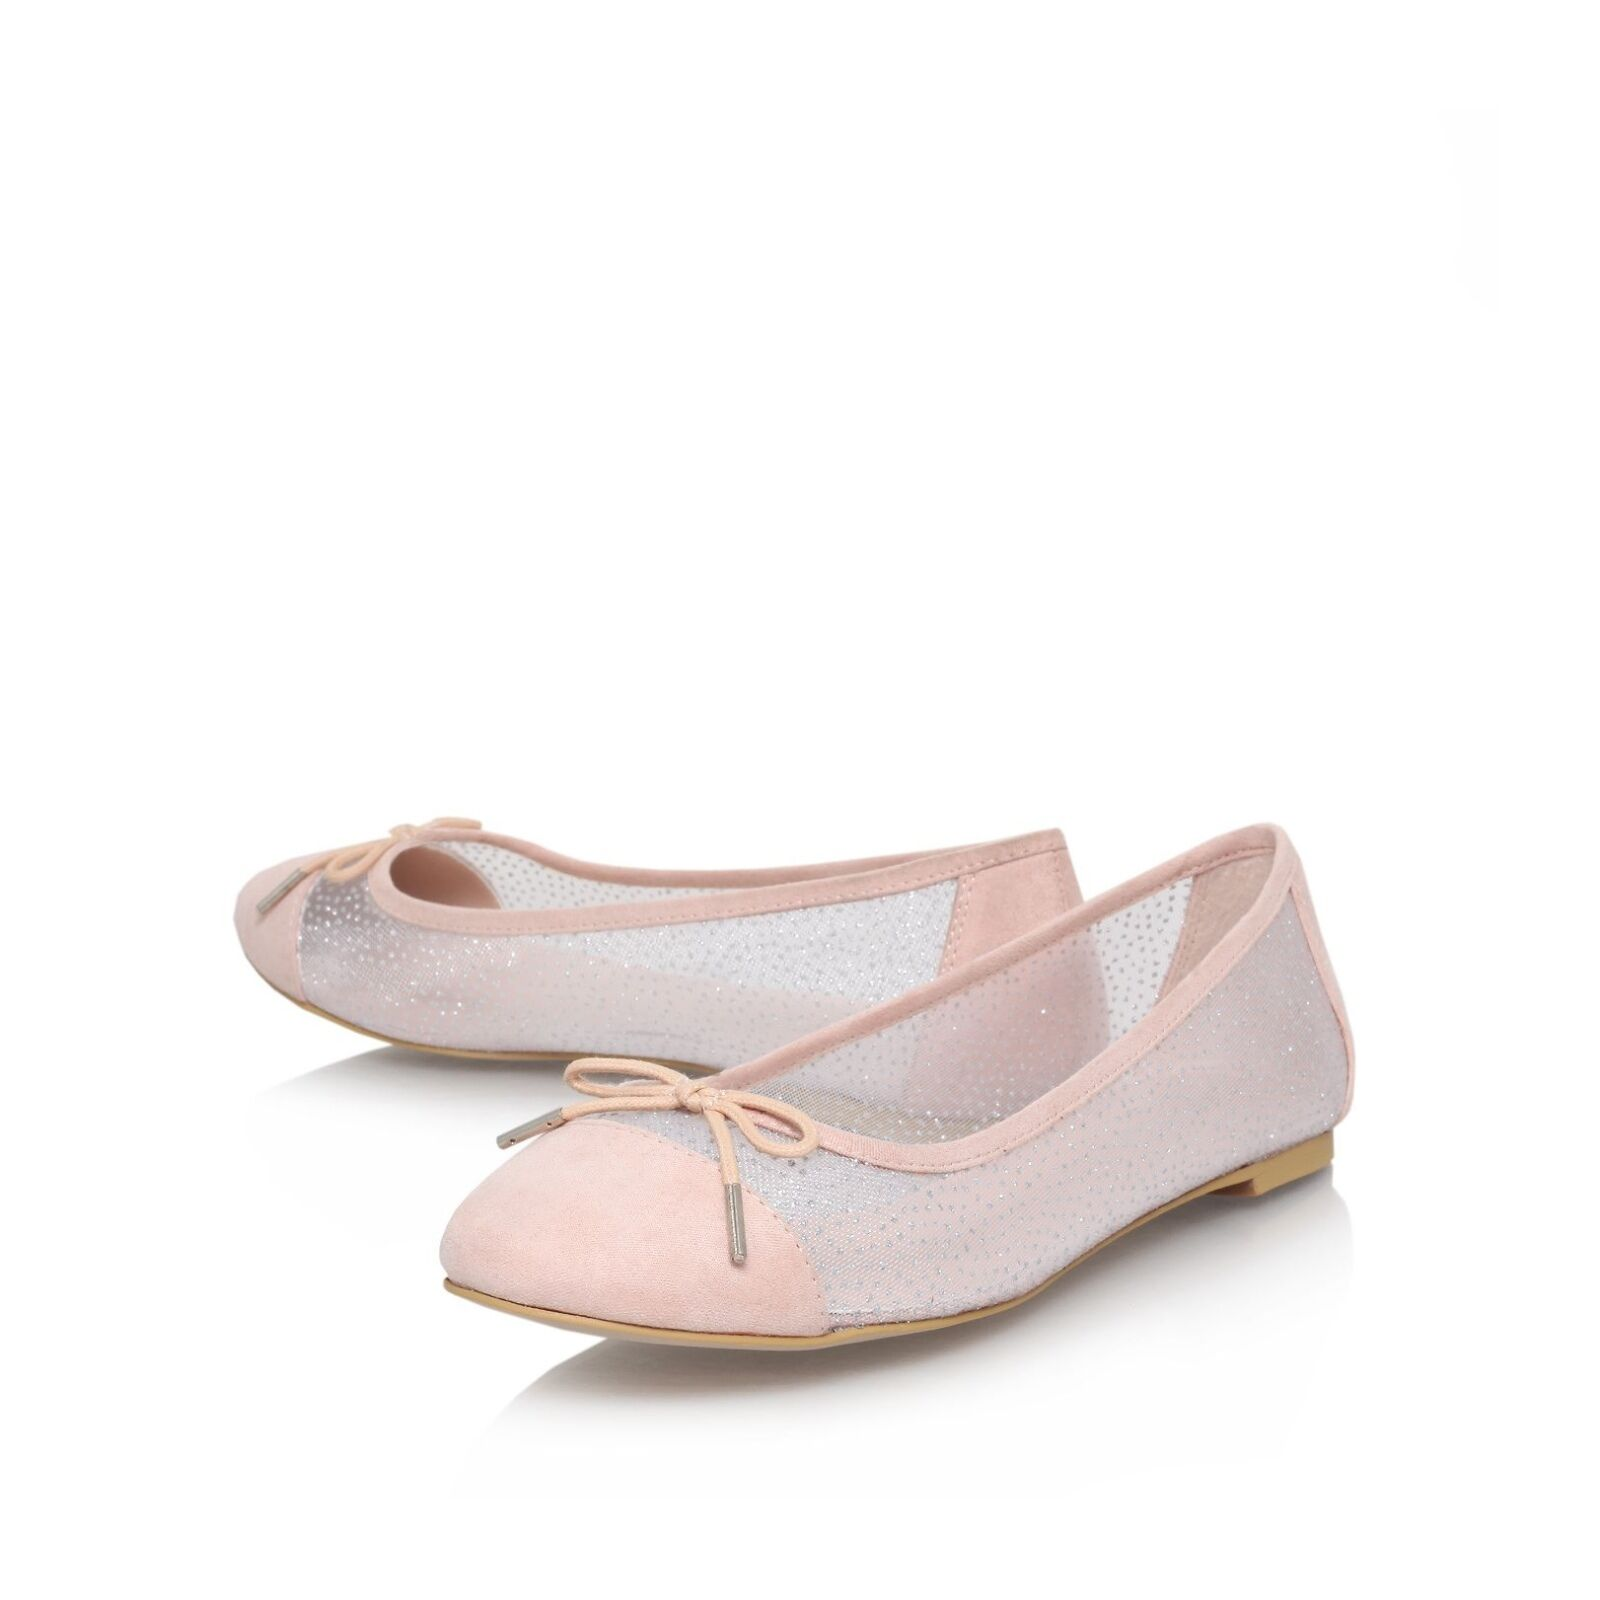 nude-flat-shoes